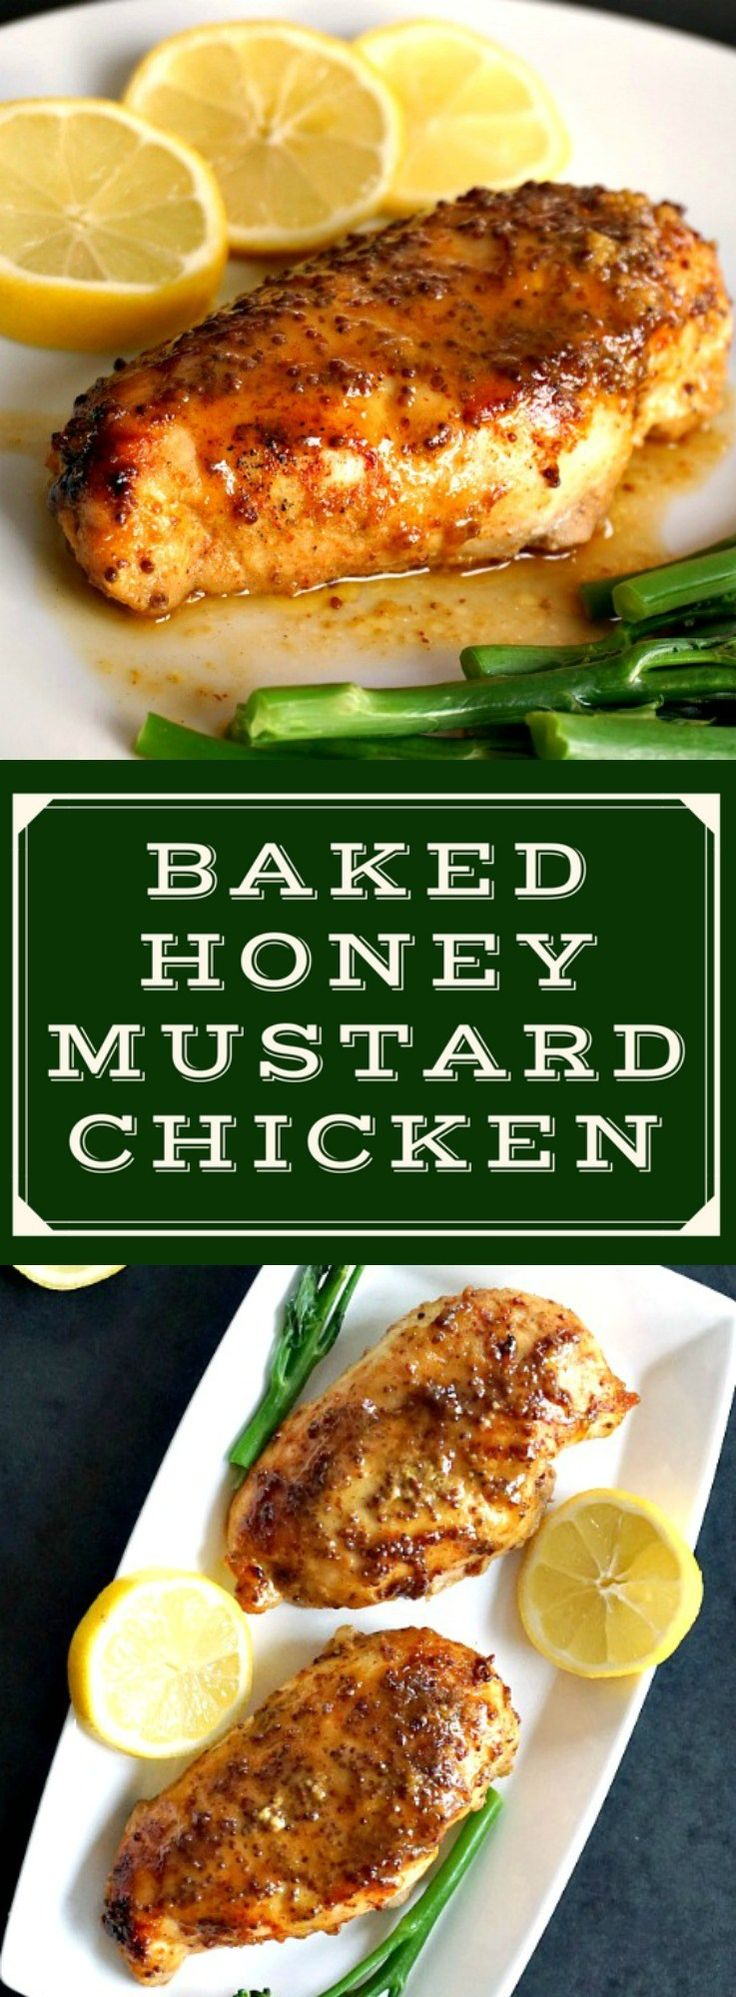 Best 25+ Chicken breasts ideas on Pinterest | Chicken ...